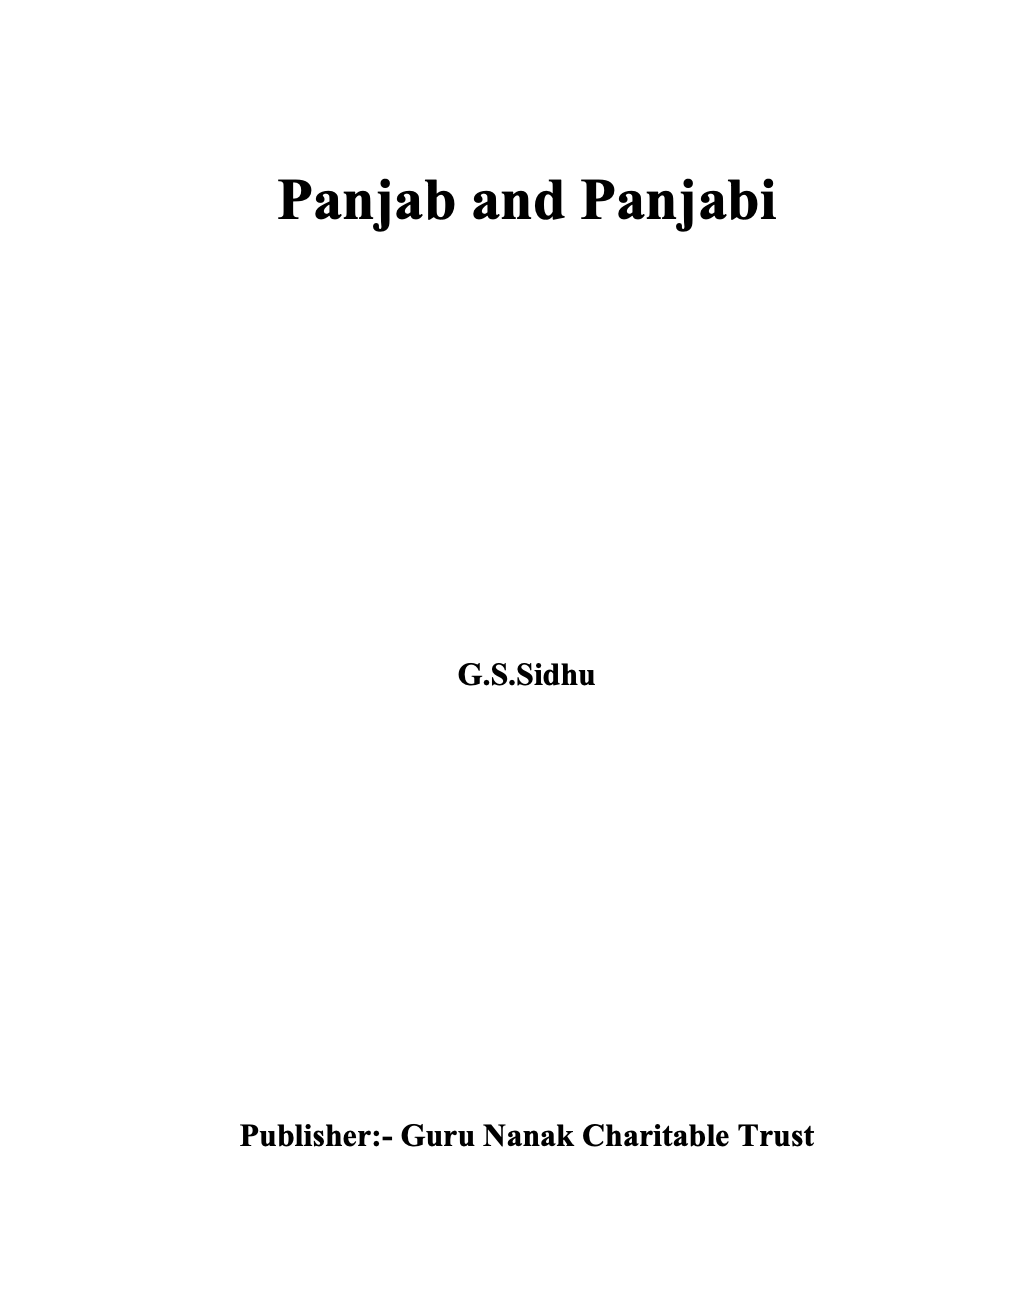 Panjab and Panjabi